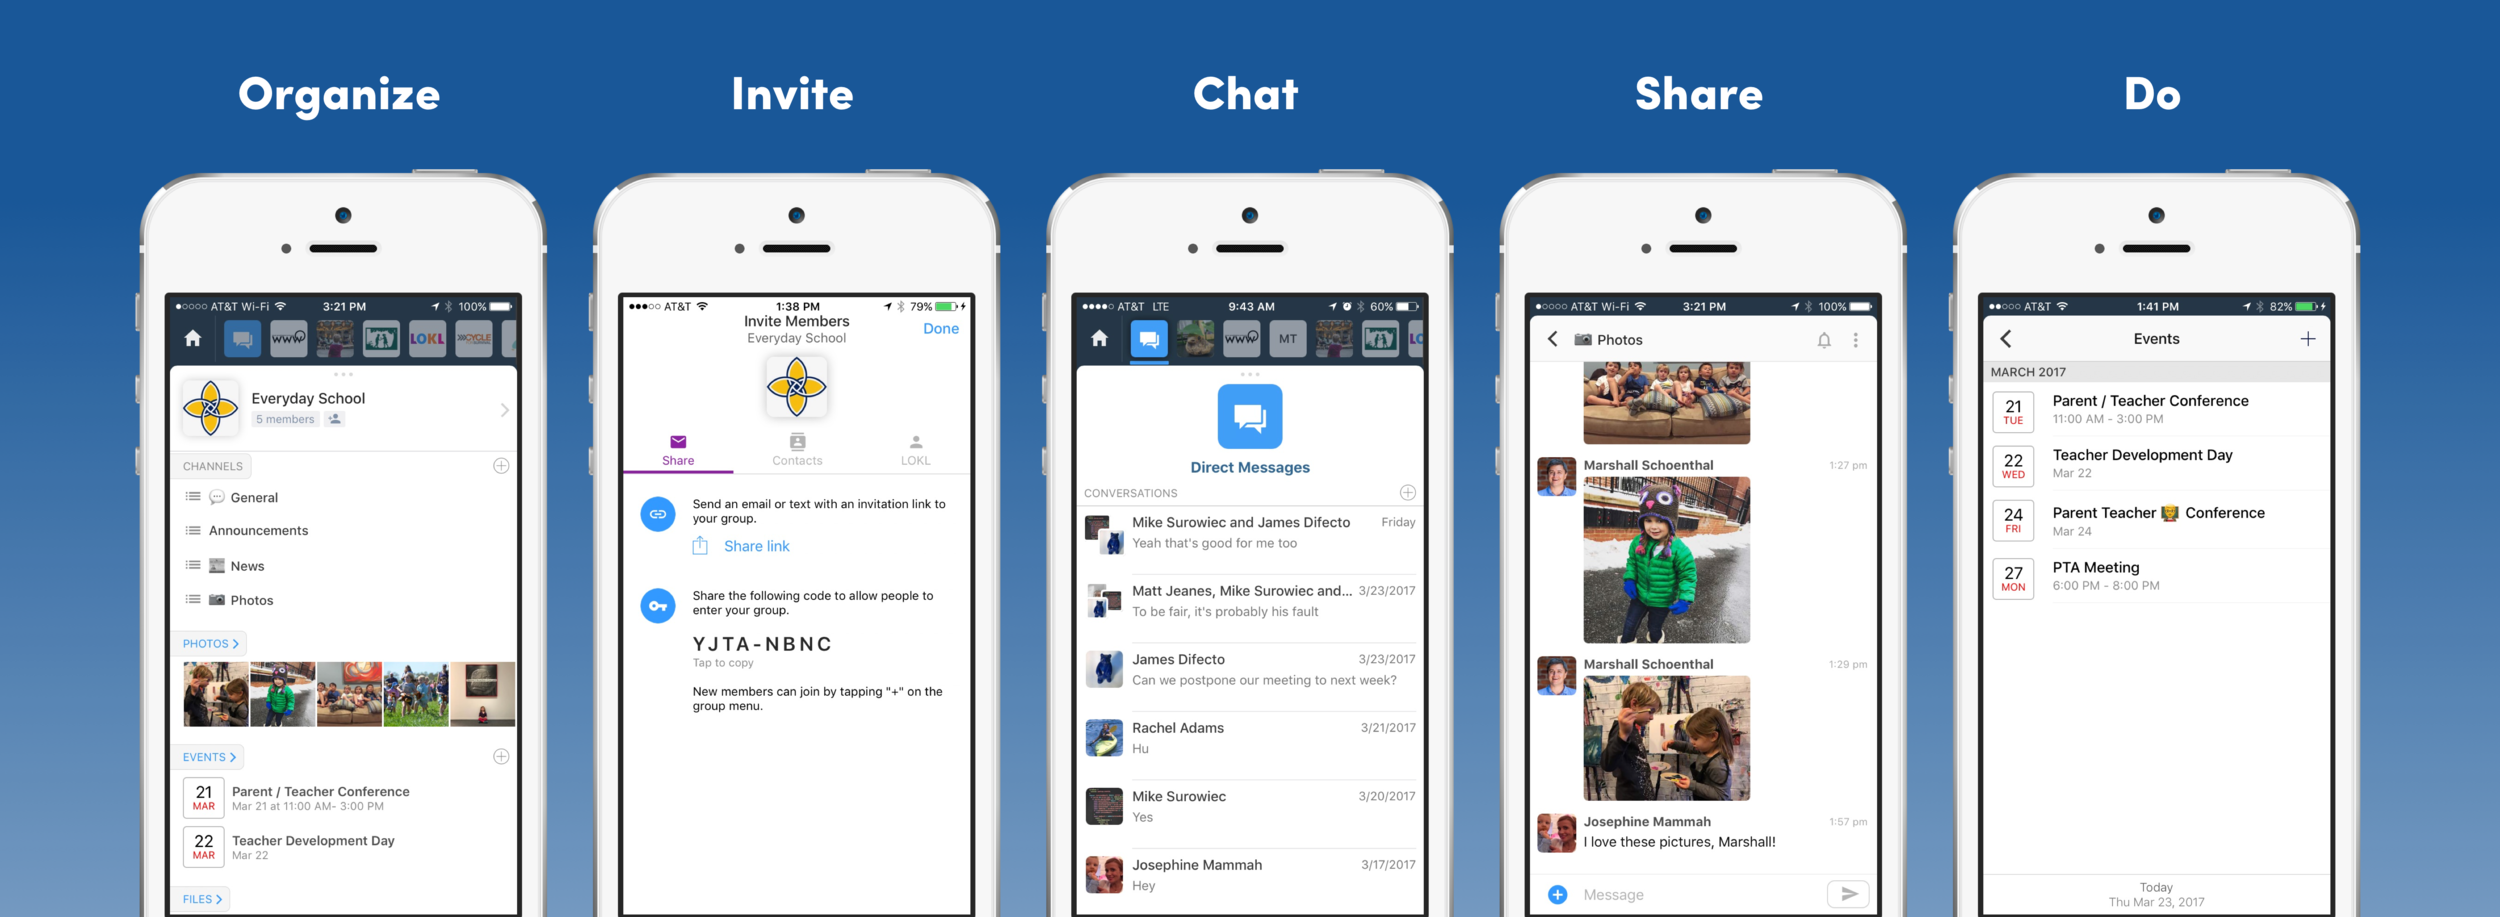 Use the Mazey app to organize, invite, chat, share and do things with your group. Channel-based chat, direct messages, a shared calendar, and shared notebooks let your group stay on the same page at all times.